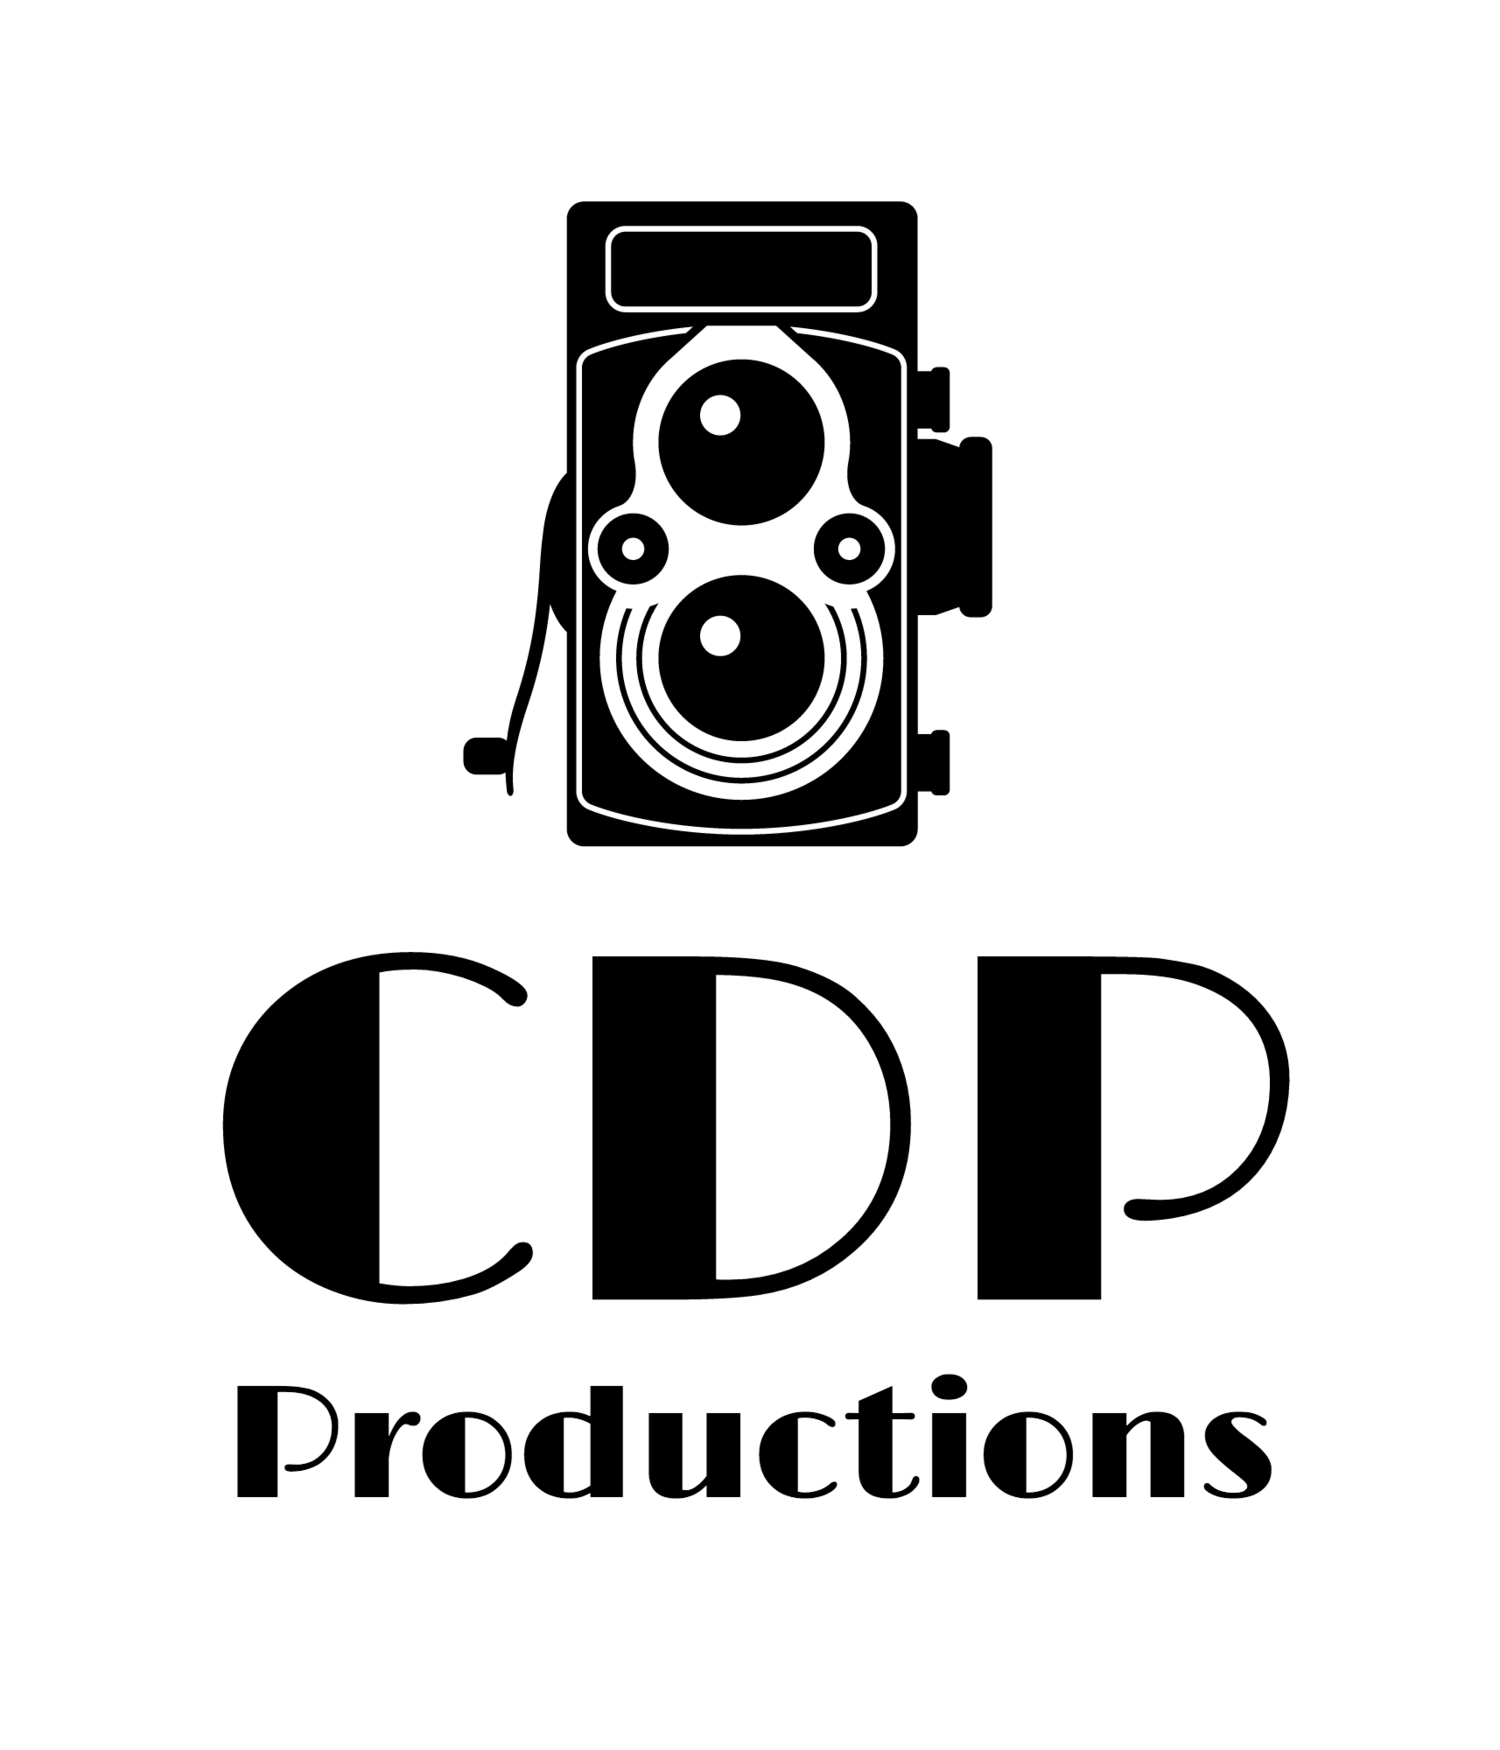 CDP Productions Inc